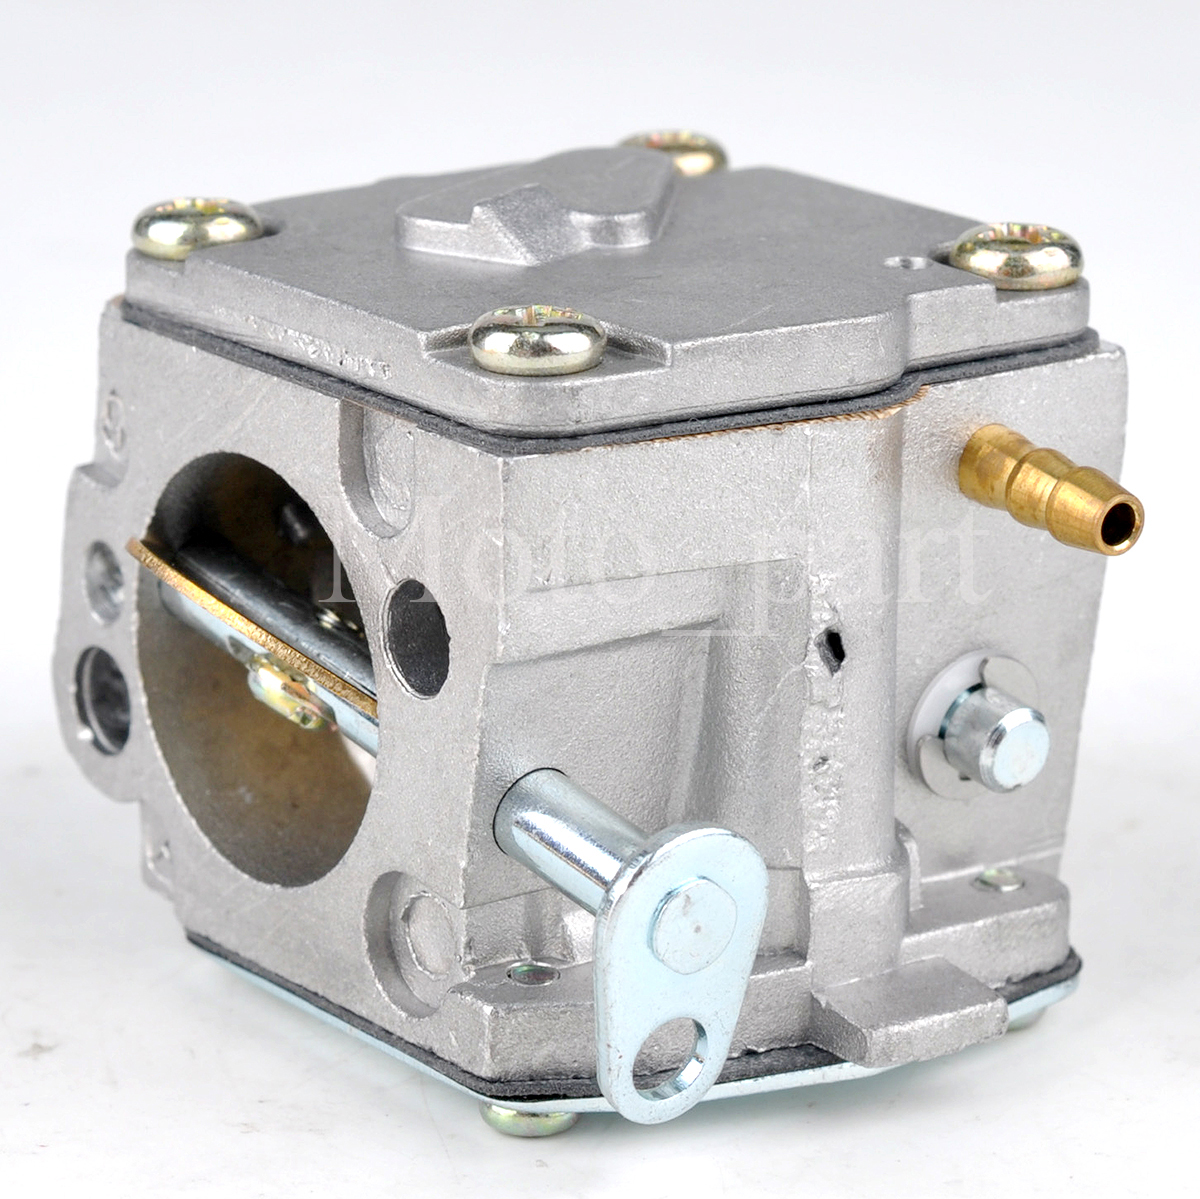 Details about Carburetor For HUSQVARNA 61 266 268 272 272XP Chainsaw  501-52-77-01